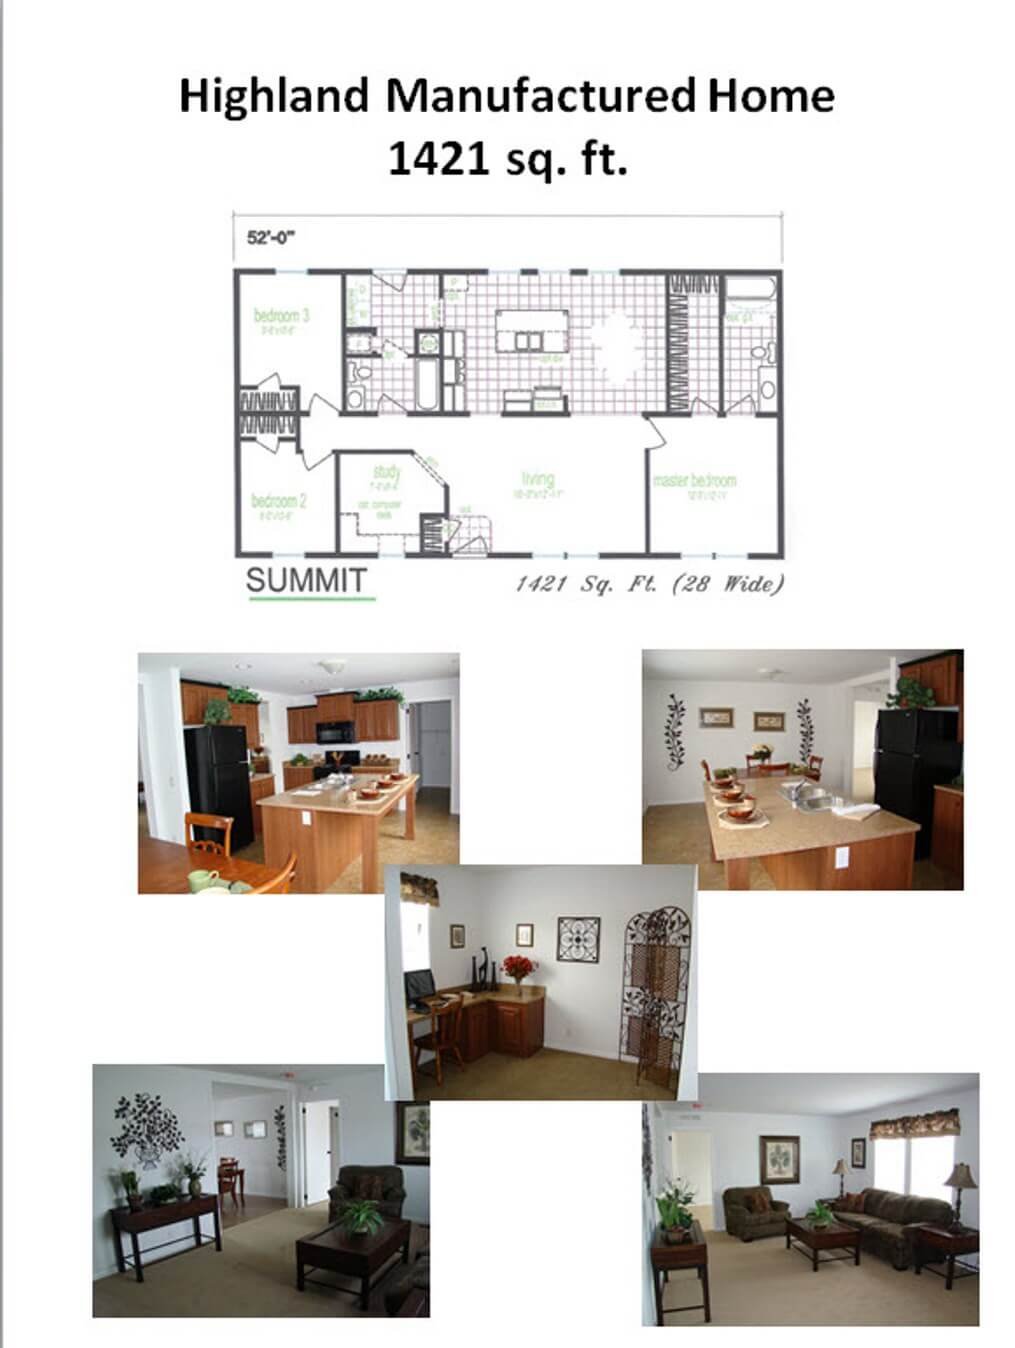 Modular home 3000 sq ft modular home for 110 square feet room